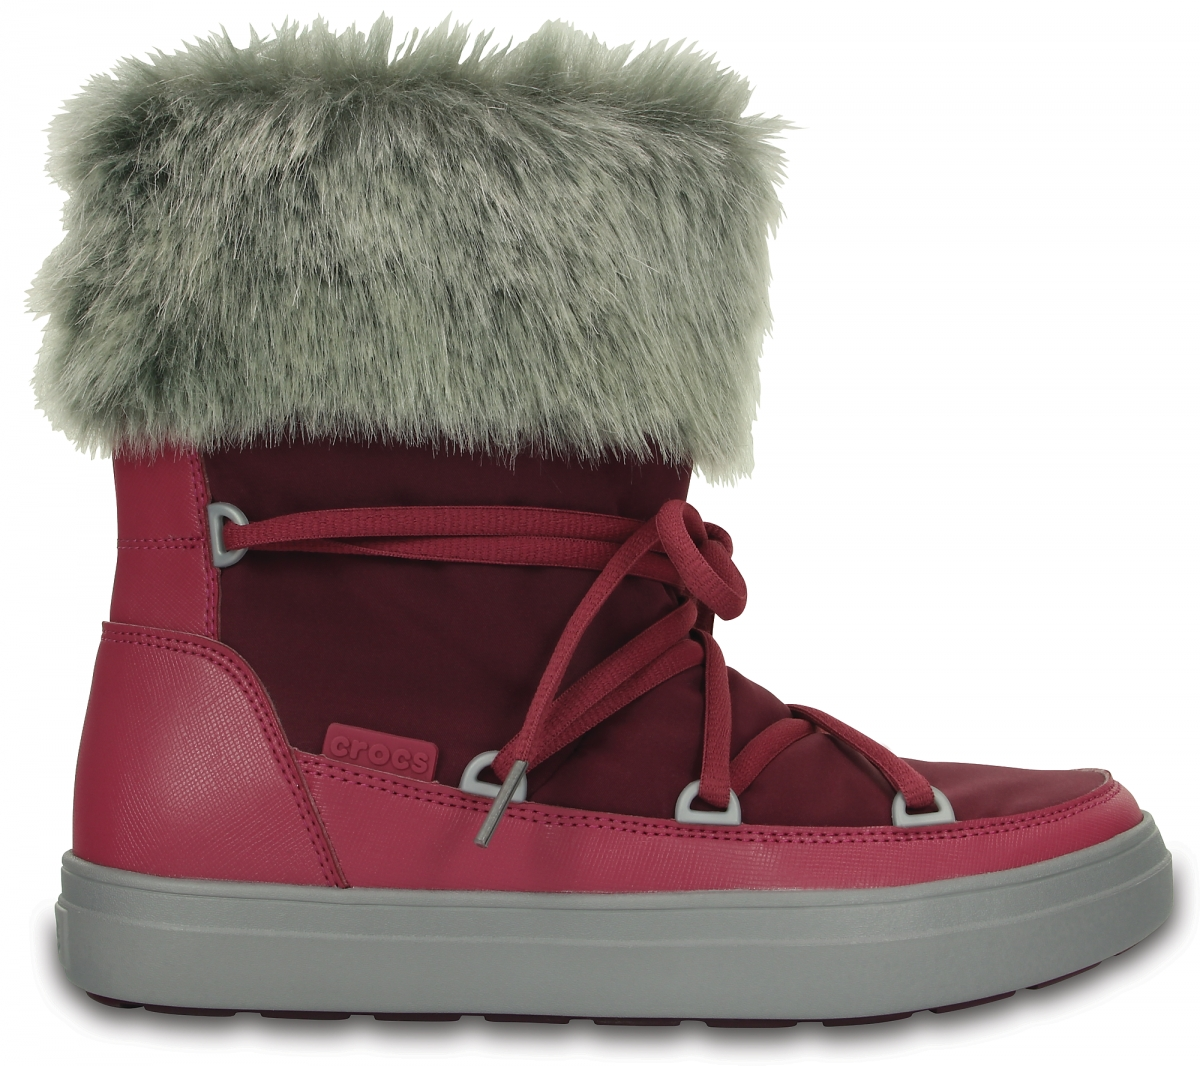 Crocs LodgePoint Lace Boot Nylon - Pomegranate, Pomegranate, W7 (37-38), W7 (37-38)